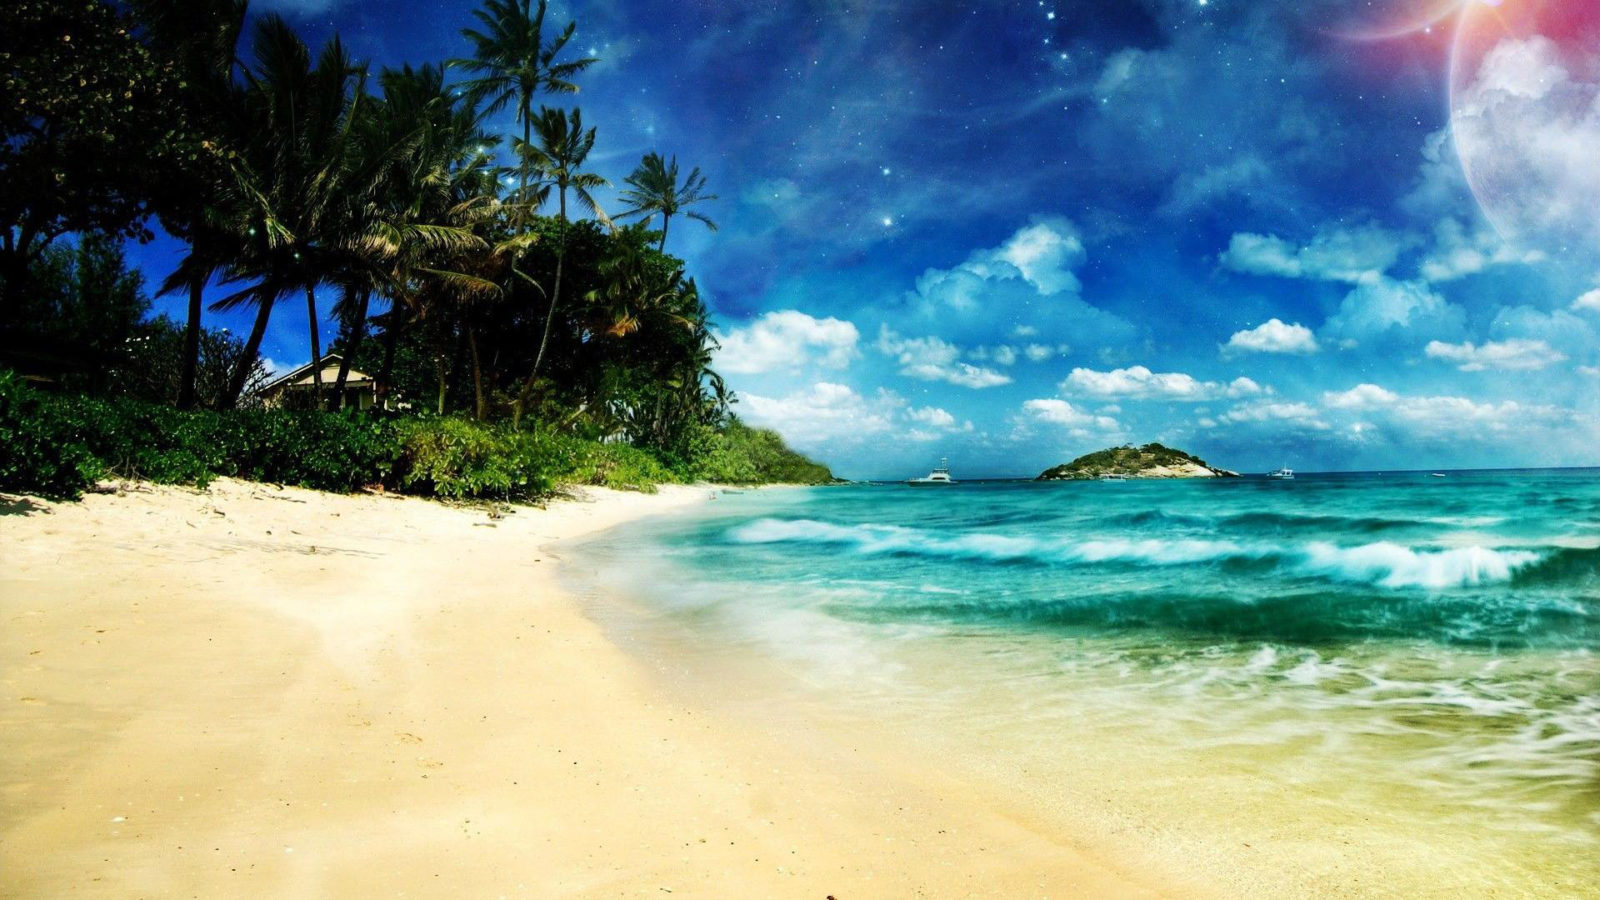 Beach Wallpaper Desktop Background 90 1600x900 129 Examples To